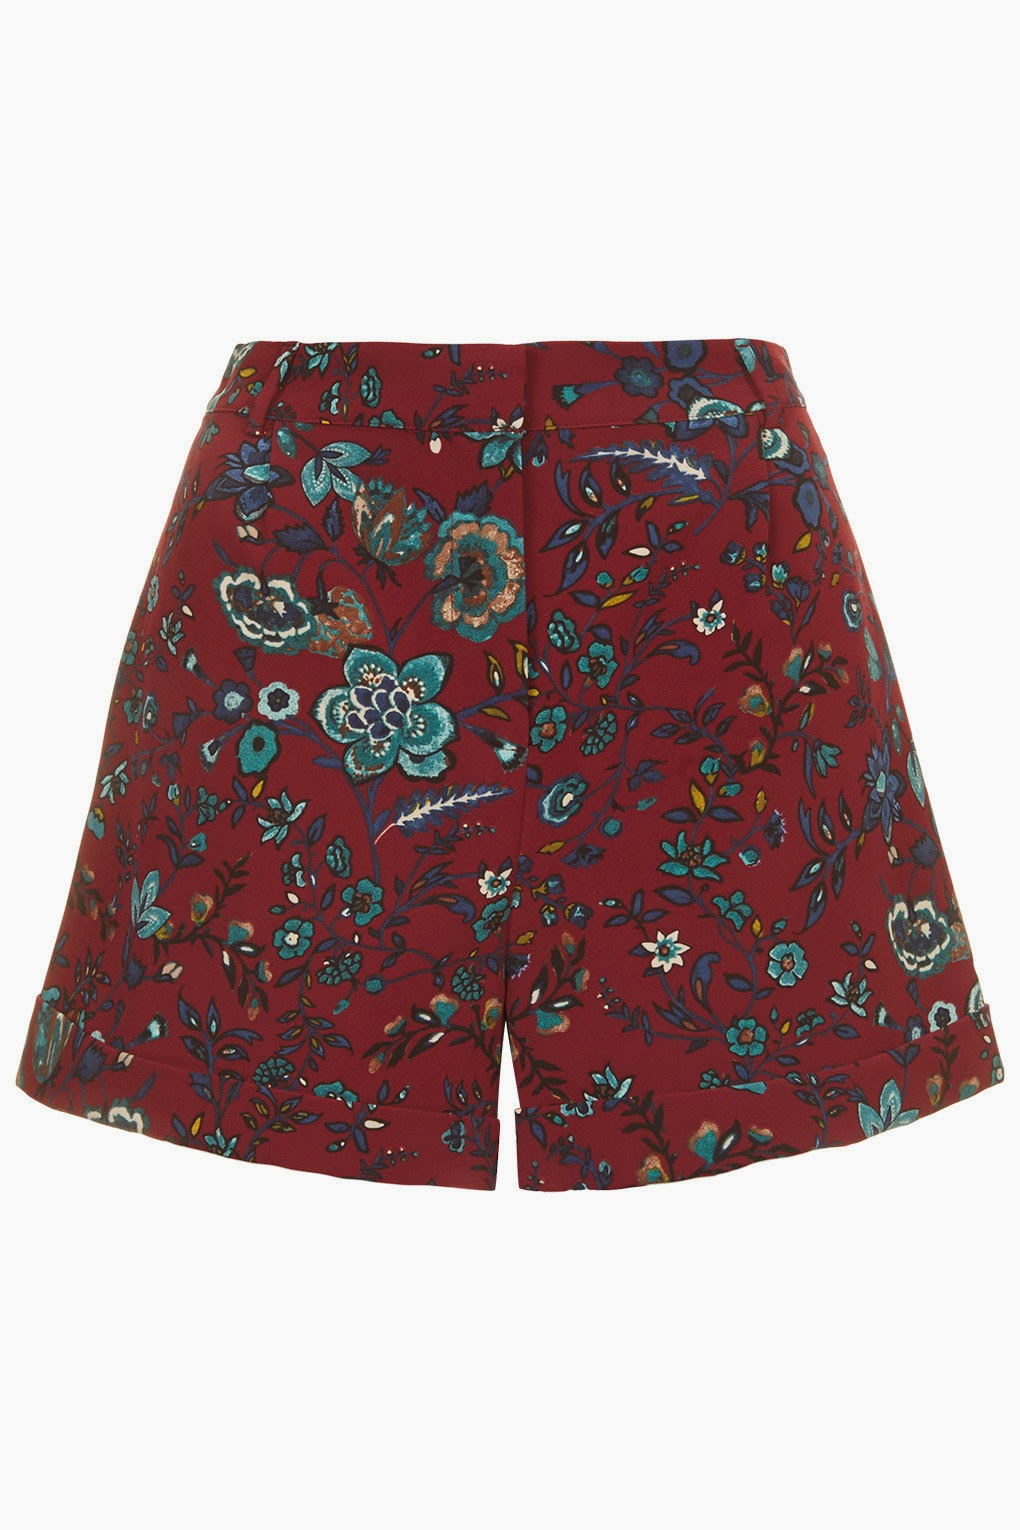 paisley burgundy shorts